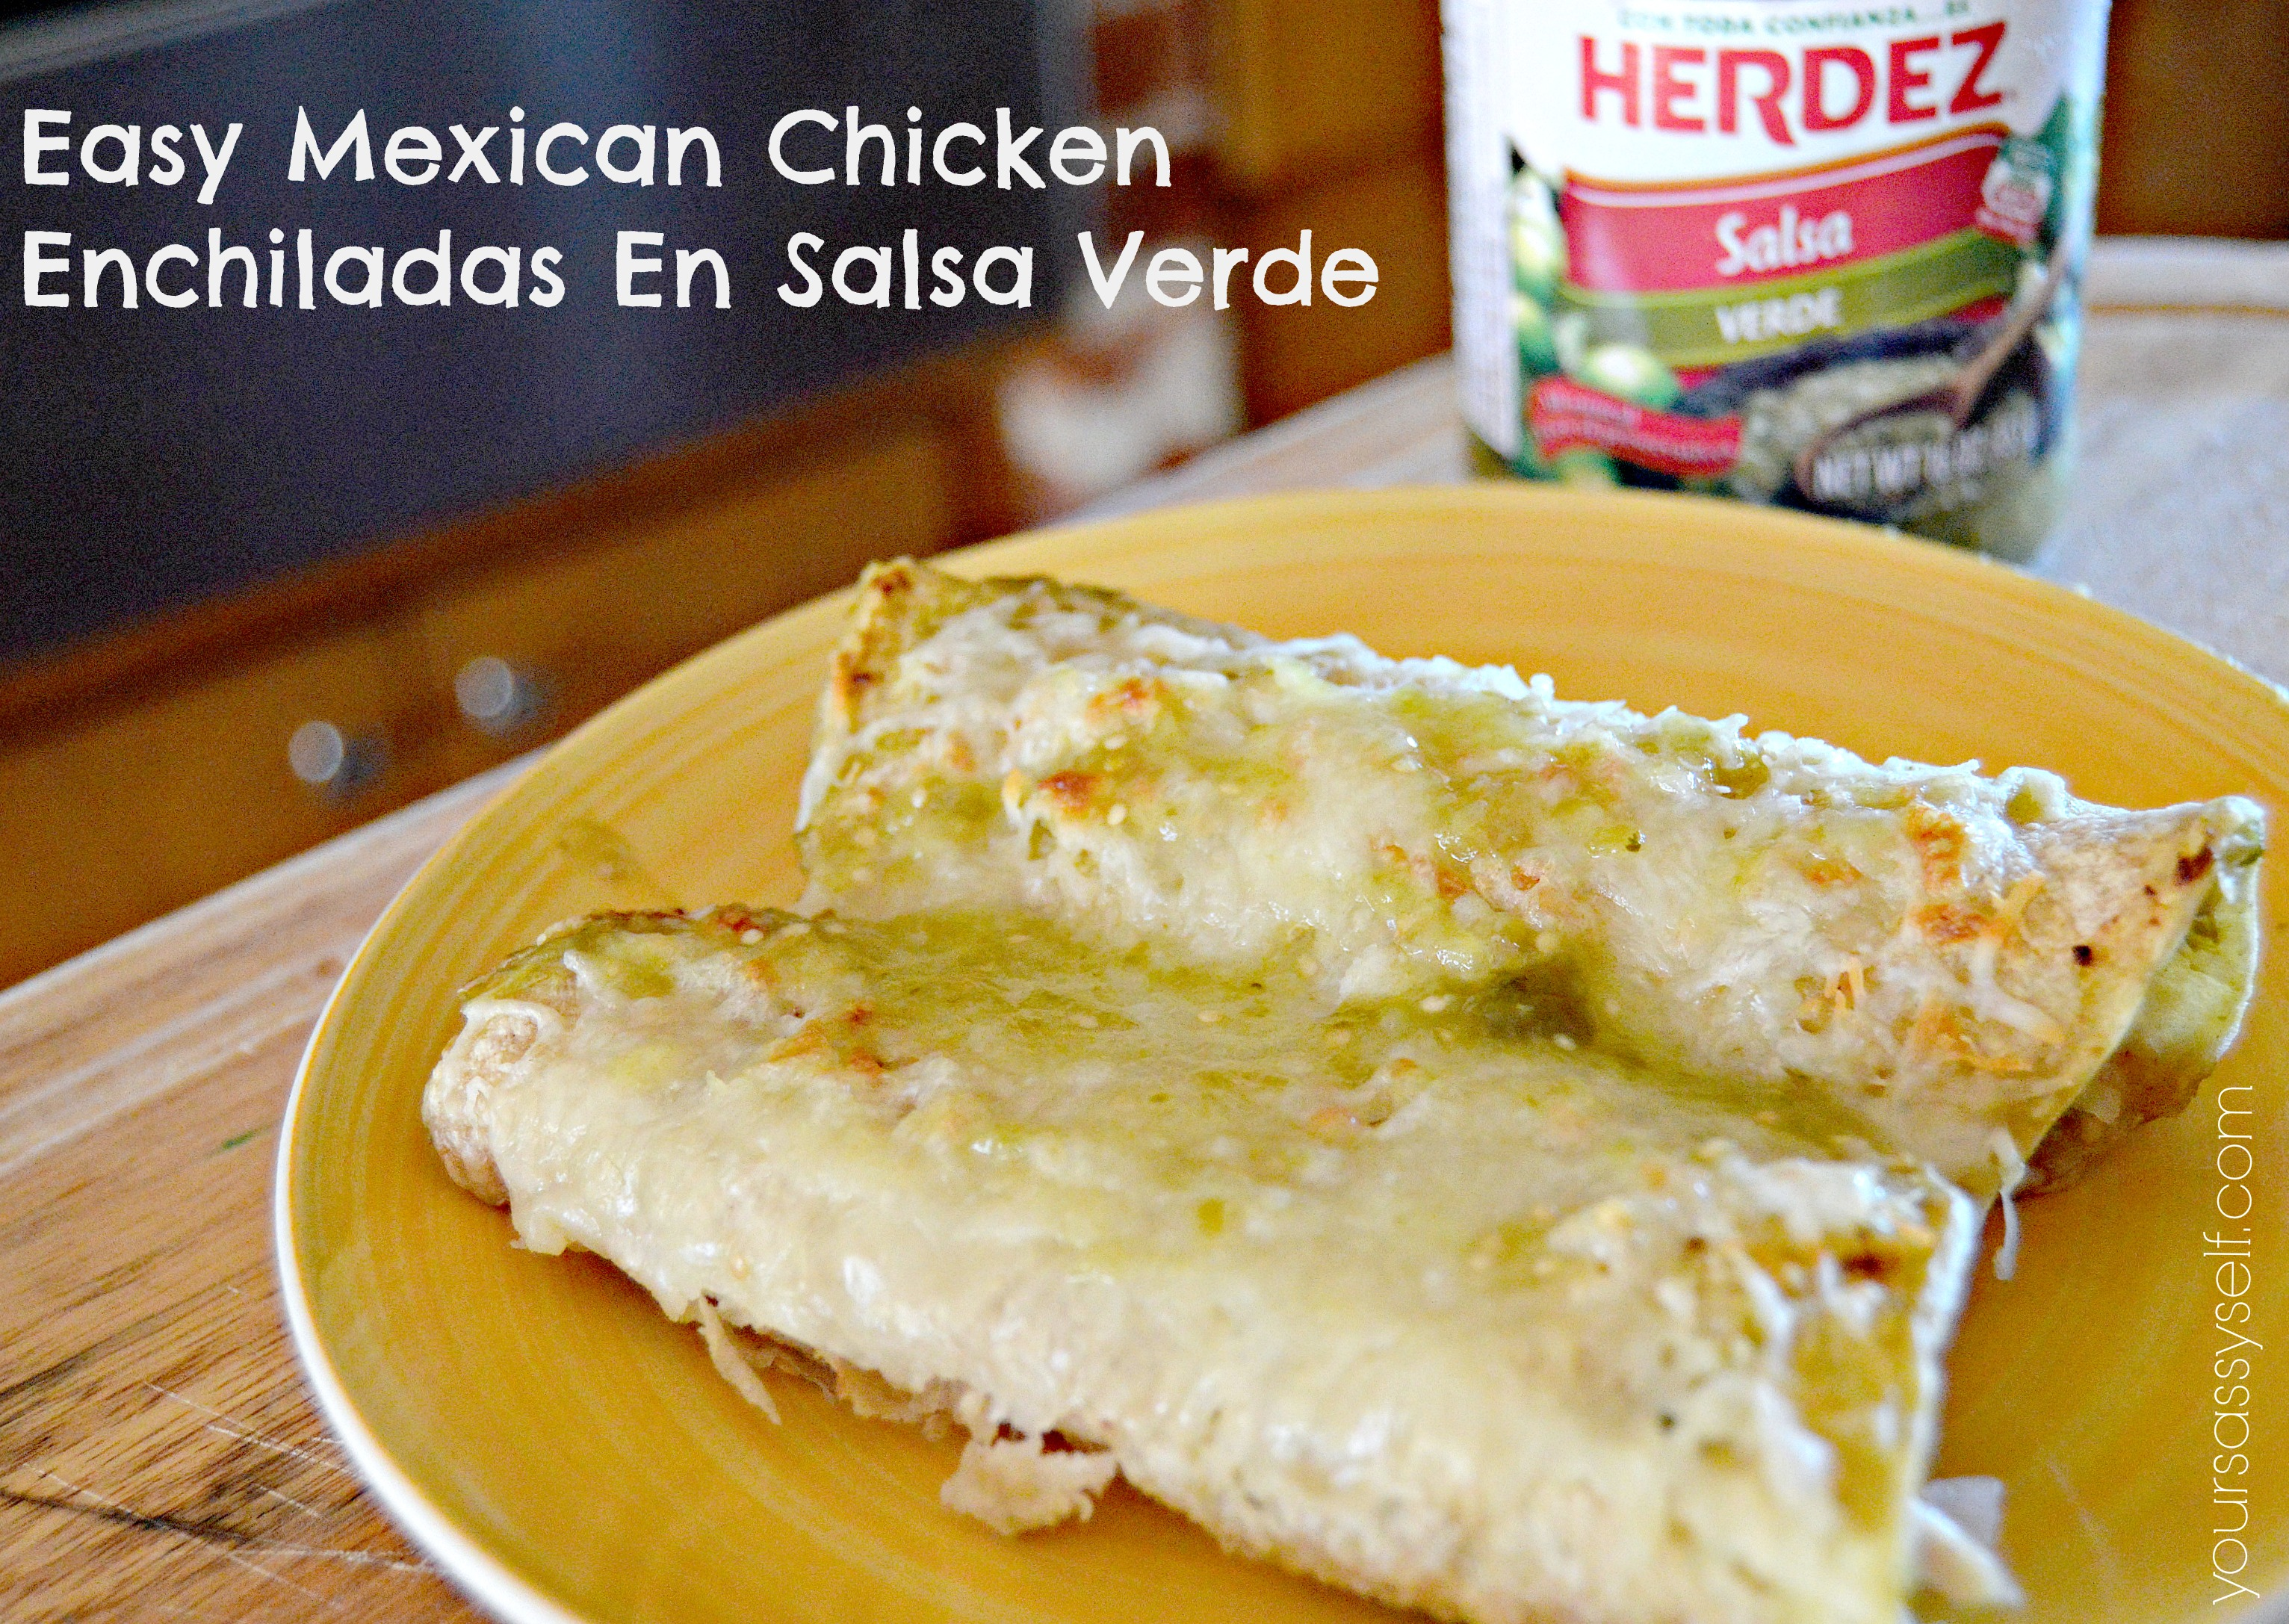 Easy Mexican Chicken Enchiladas En Salsa Verde